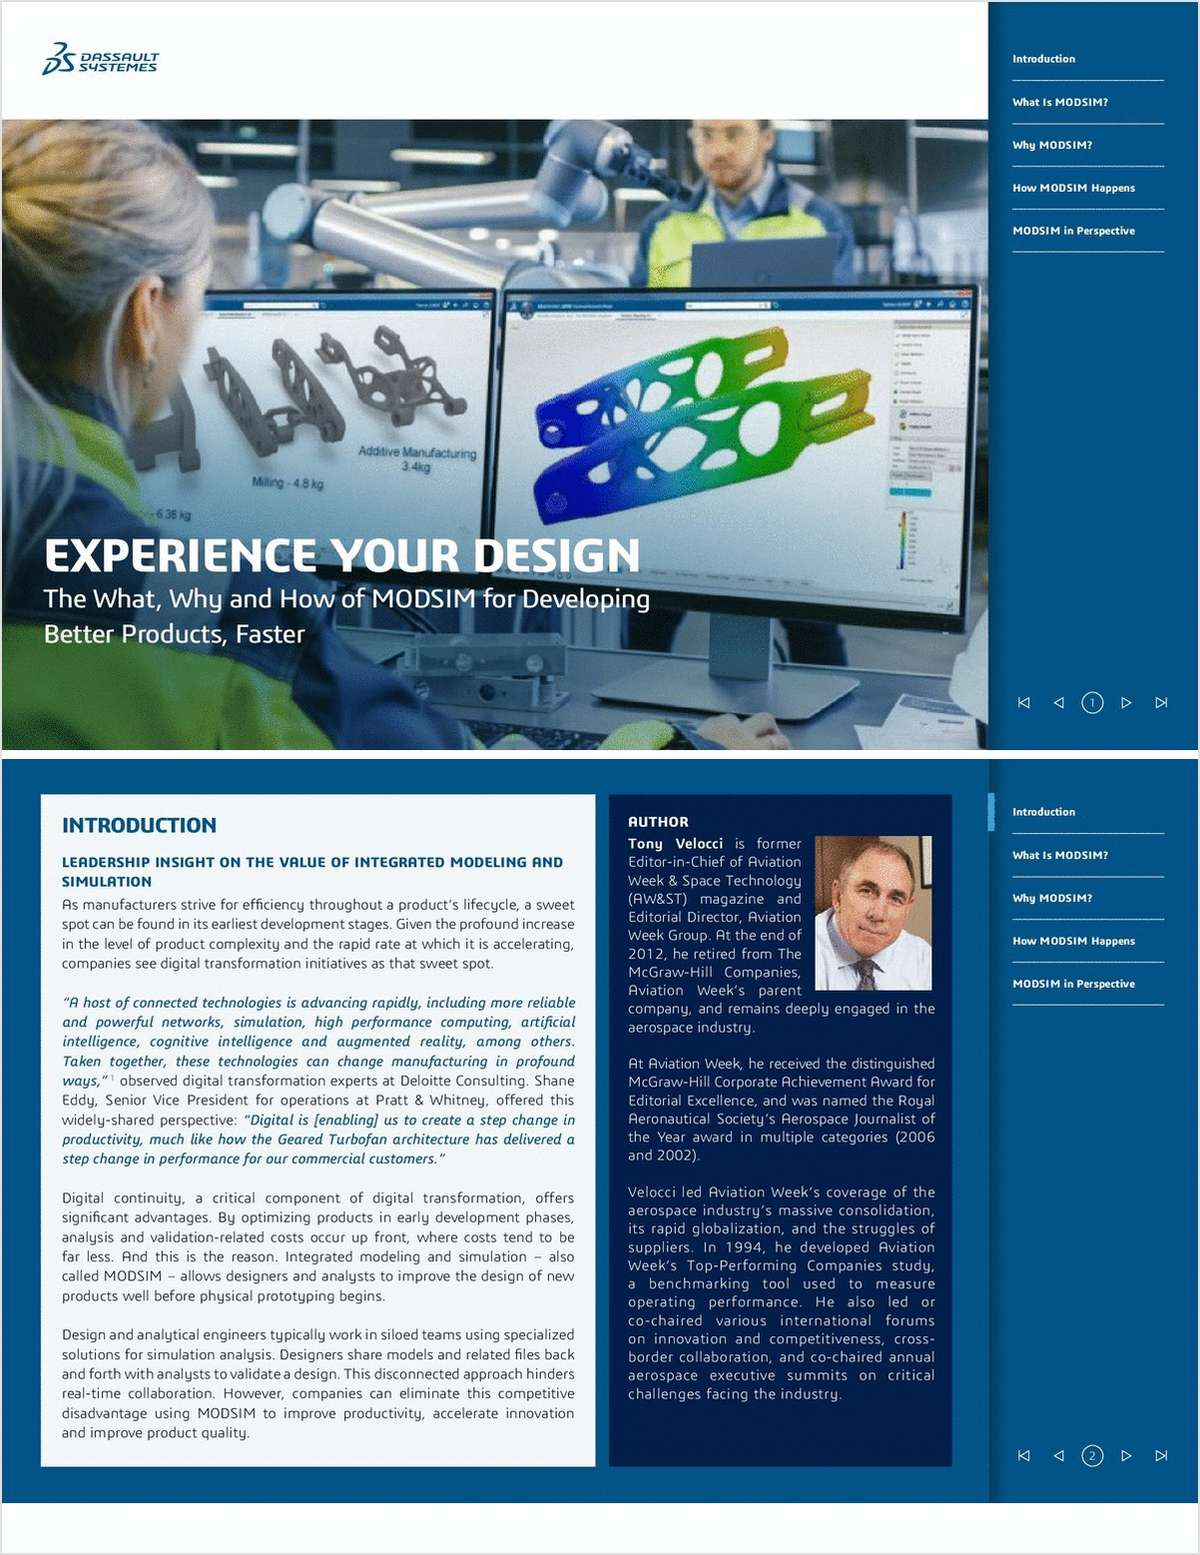 Experience Your Design: The What, Why and How of MODSIM for Developing Better Products, Faster